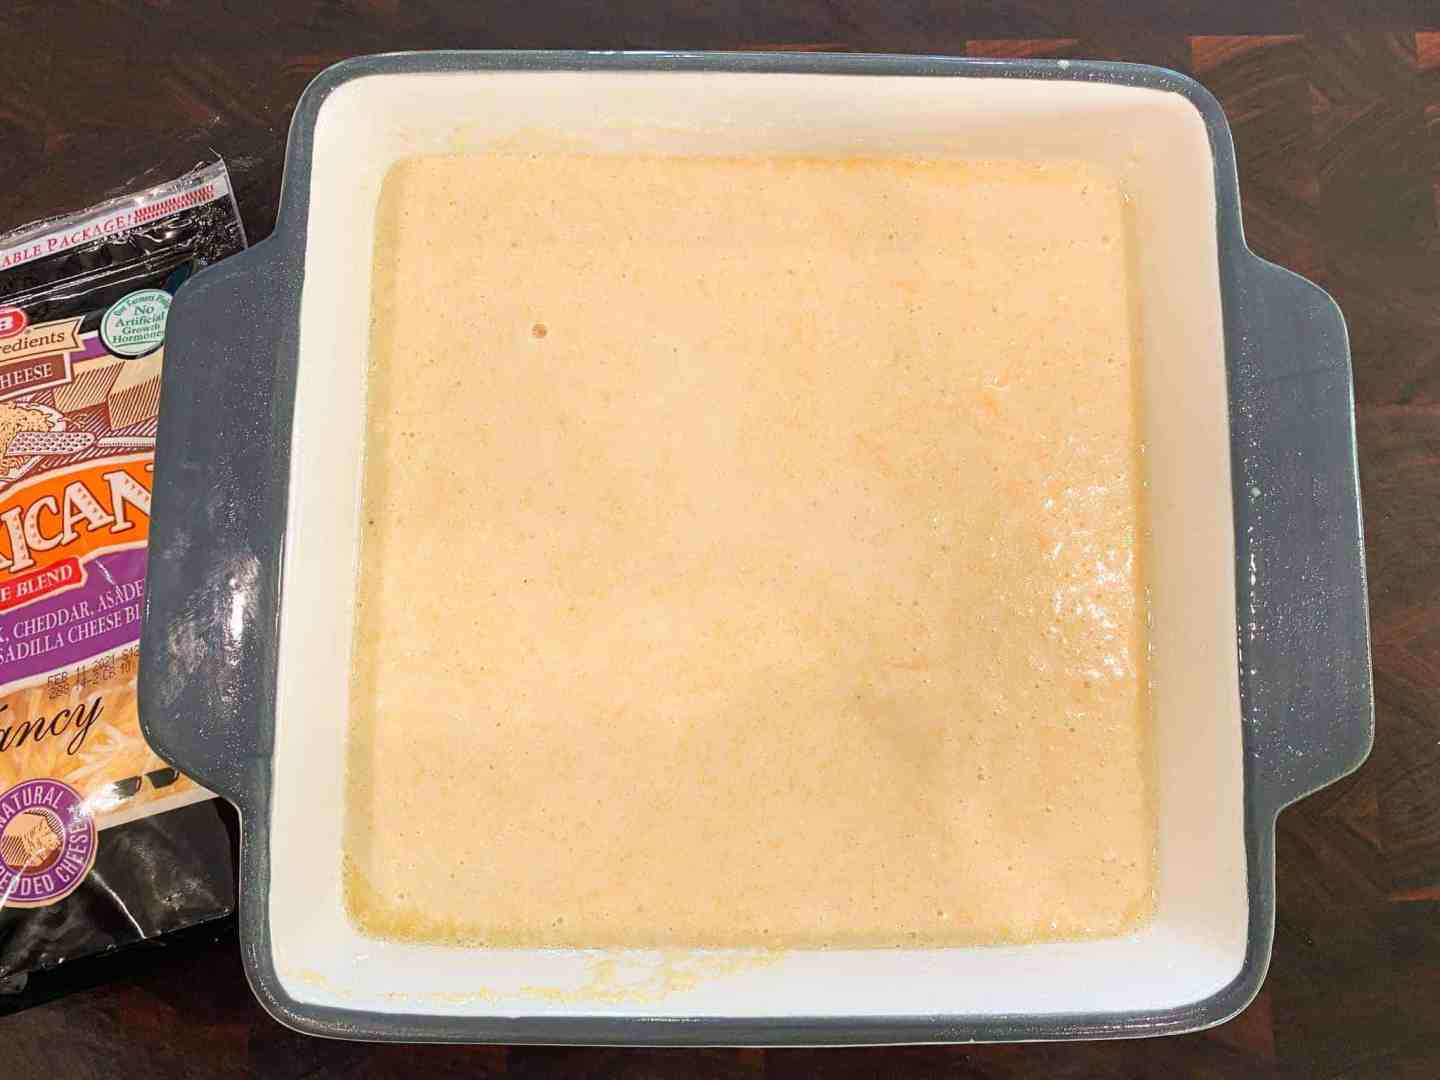 bake-cornbread-at-450-for-22-minutes